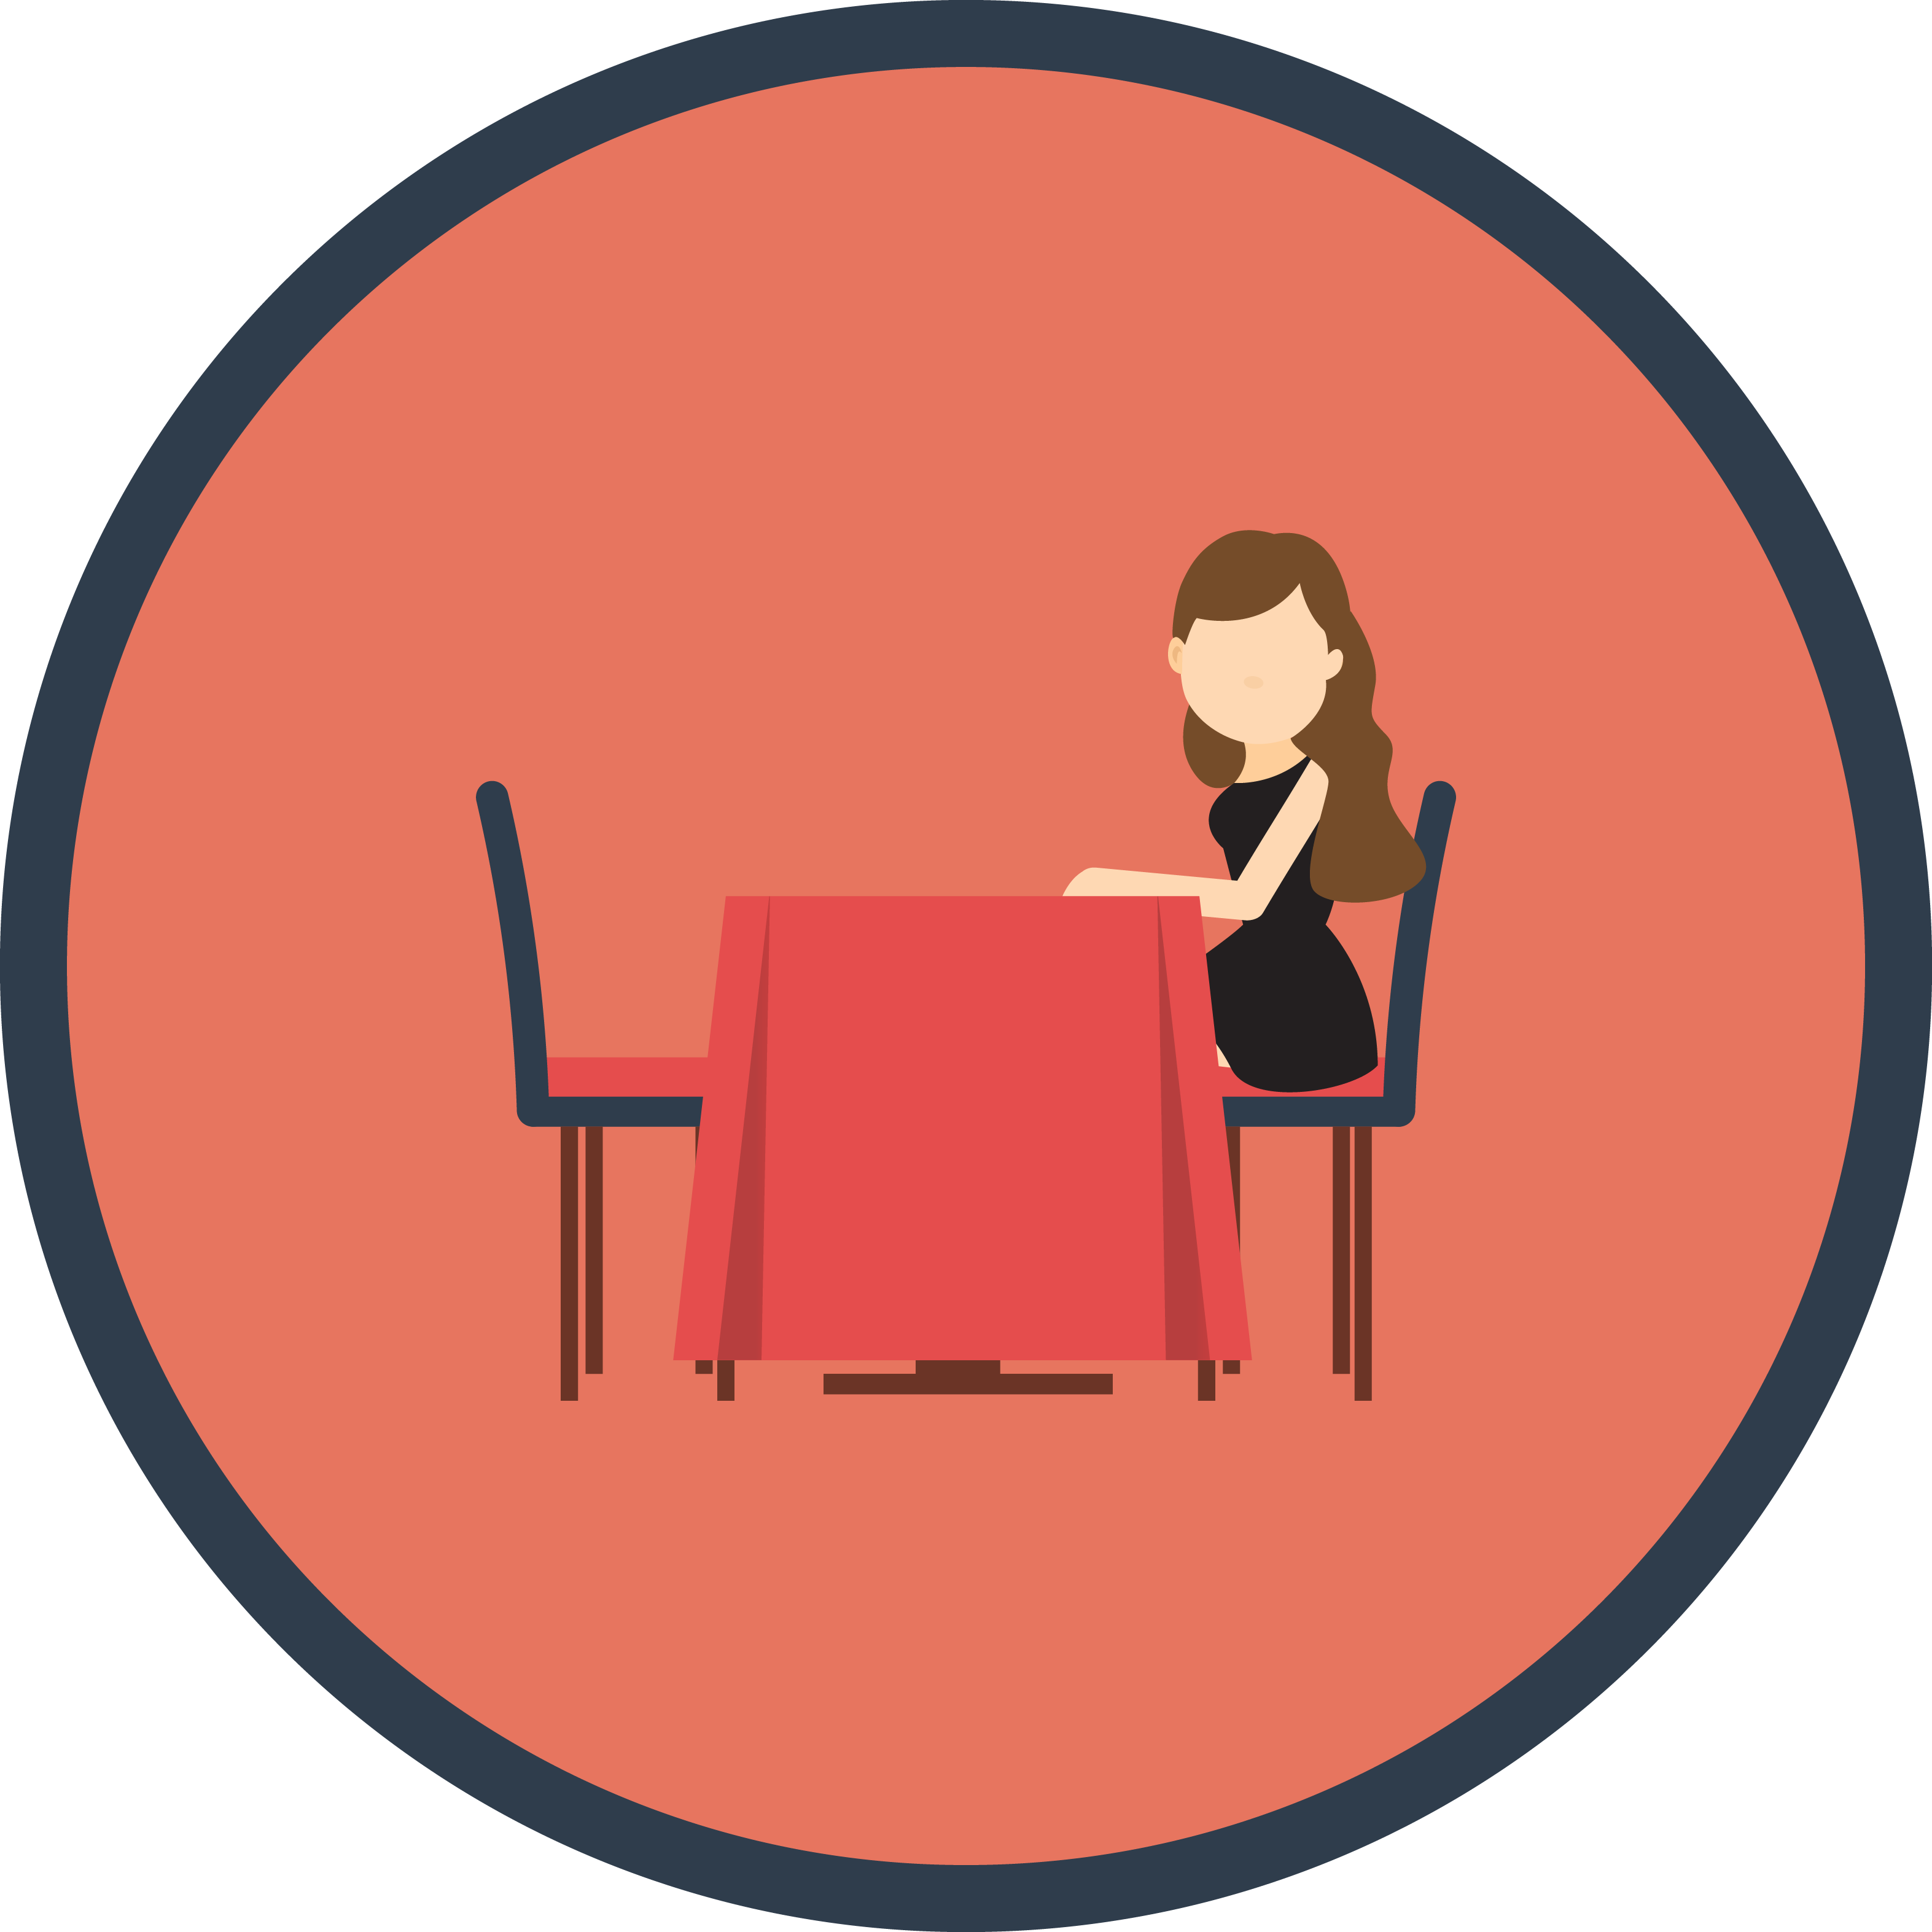 Seat check app sharing. Clipart table empty table